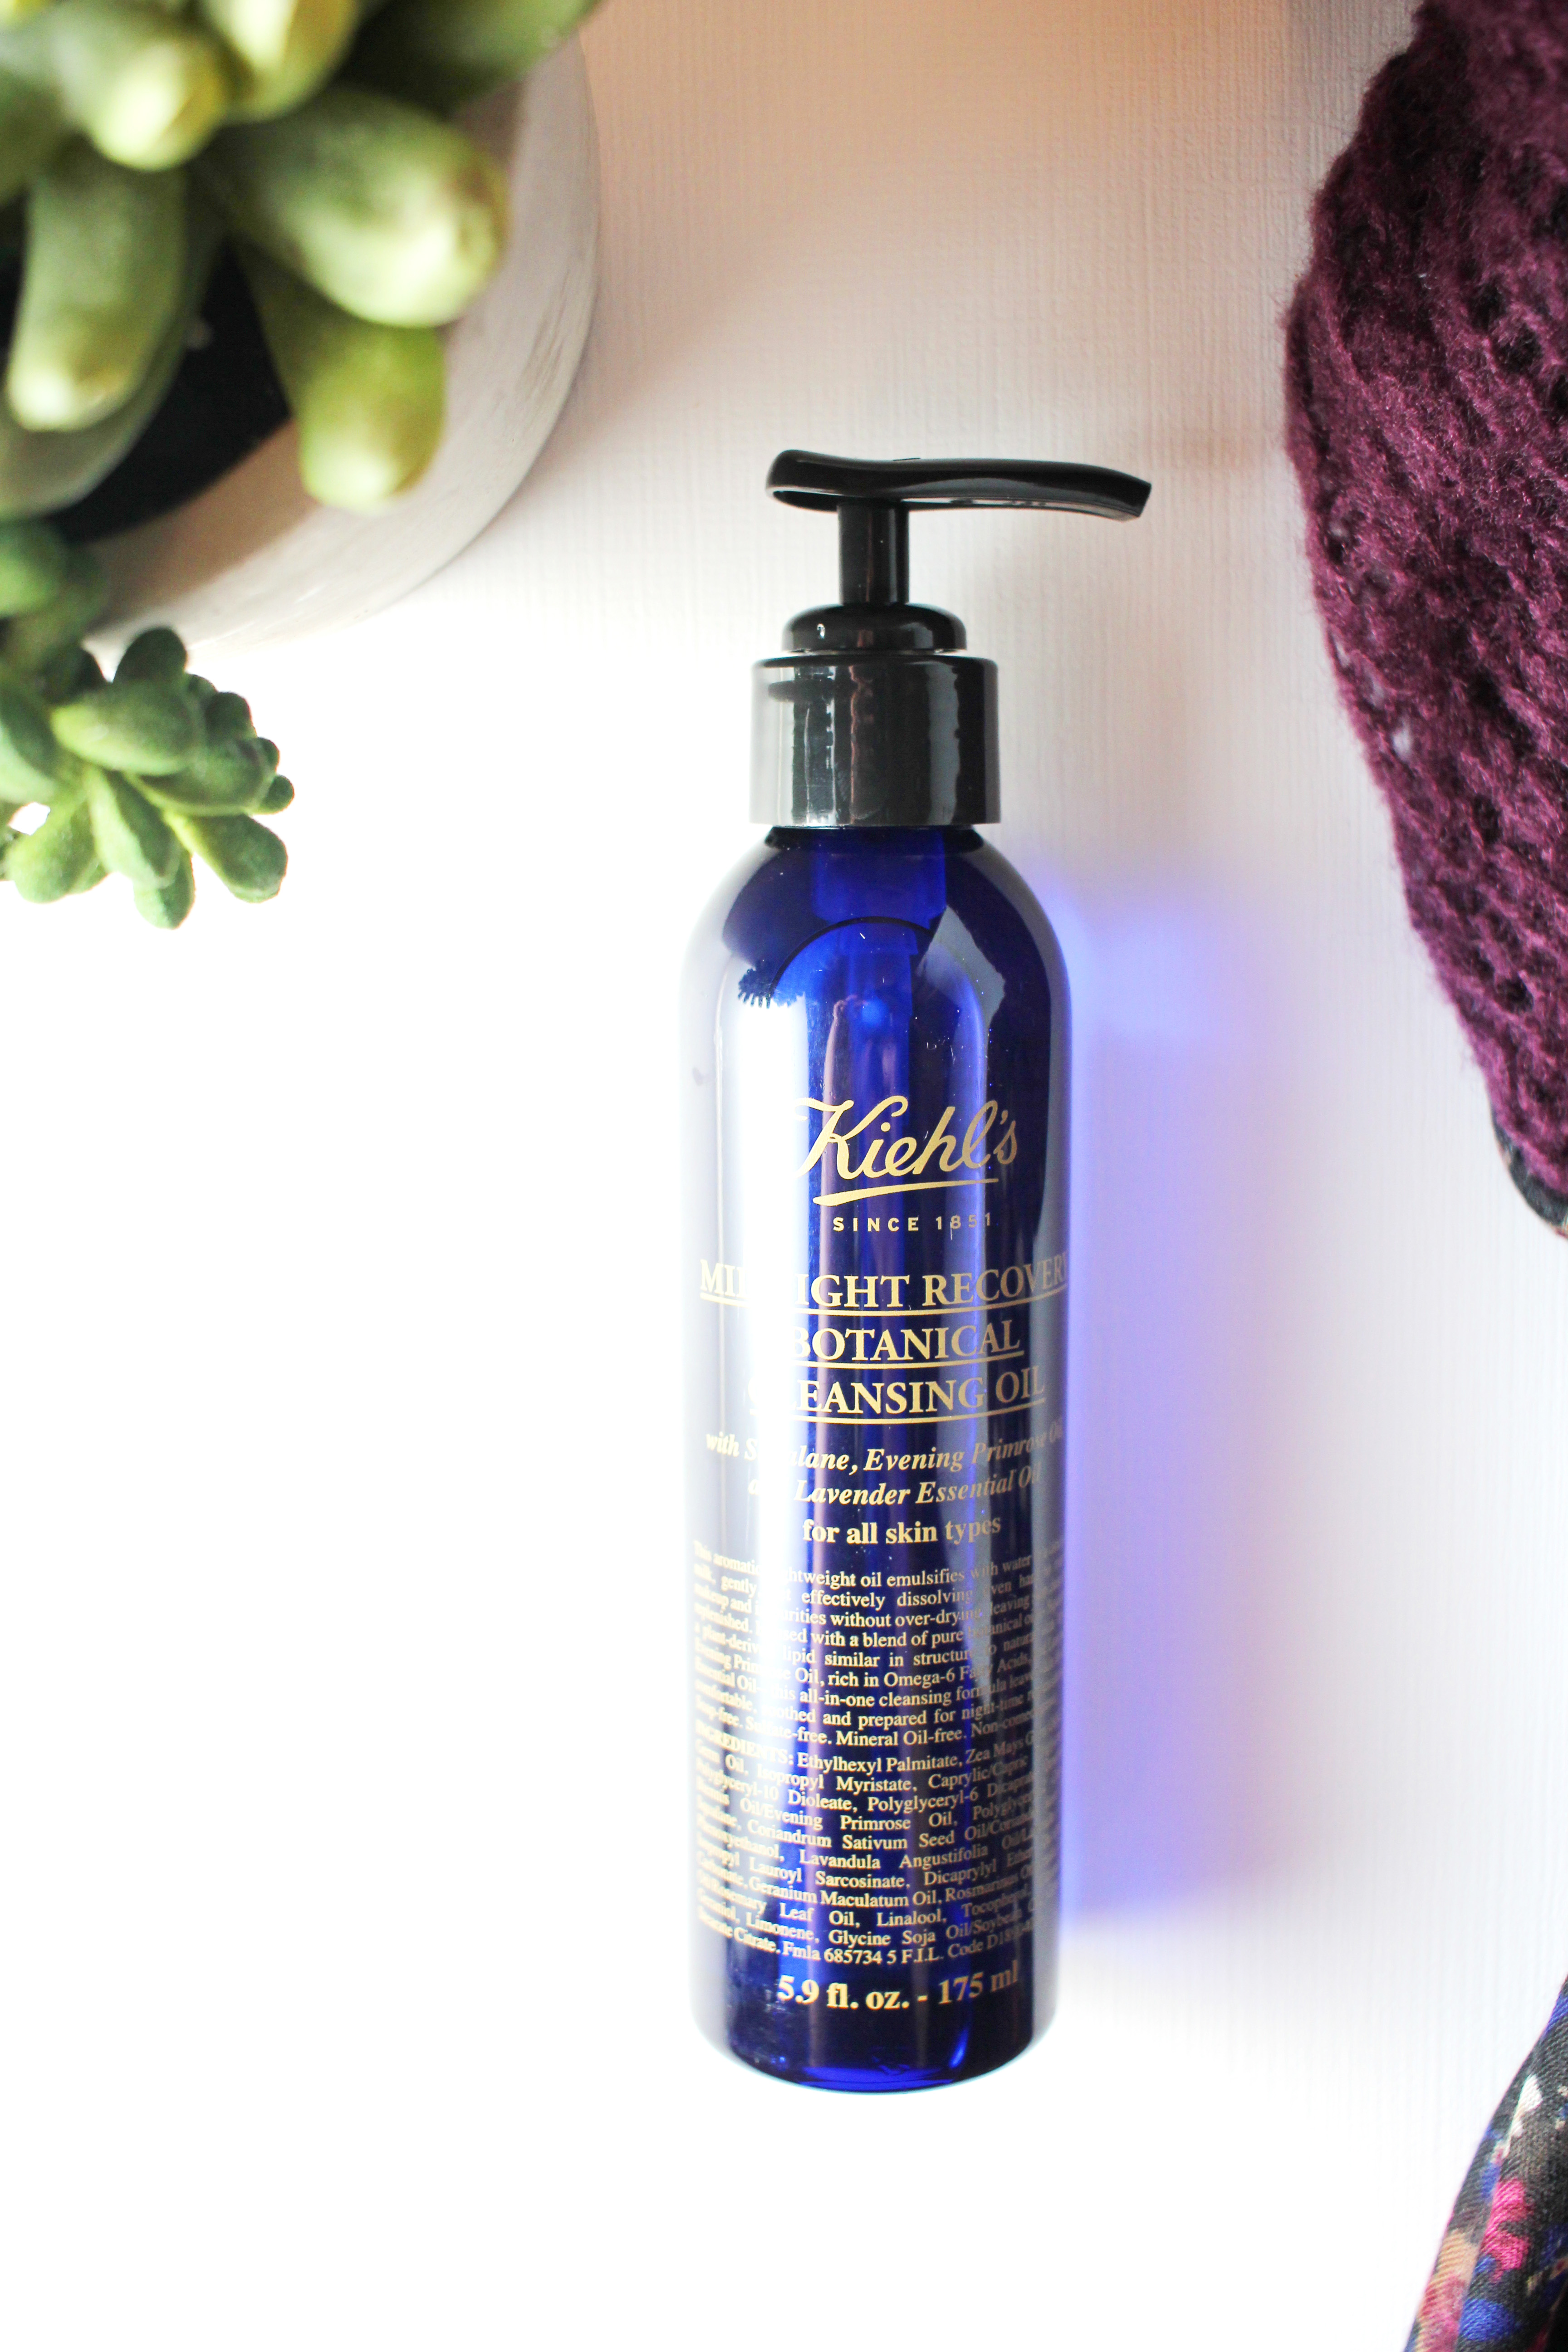 kiehls-midnight-recovery-botanical-cleansing-oil-review